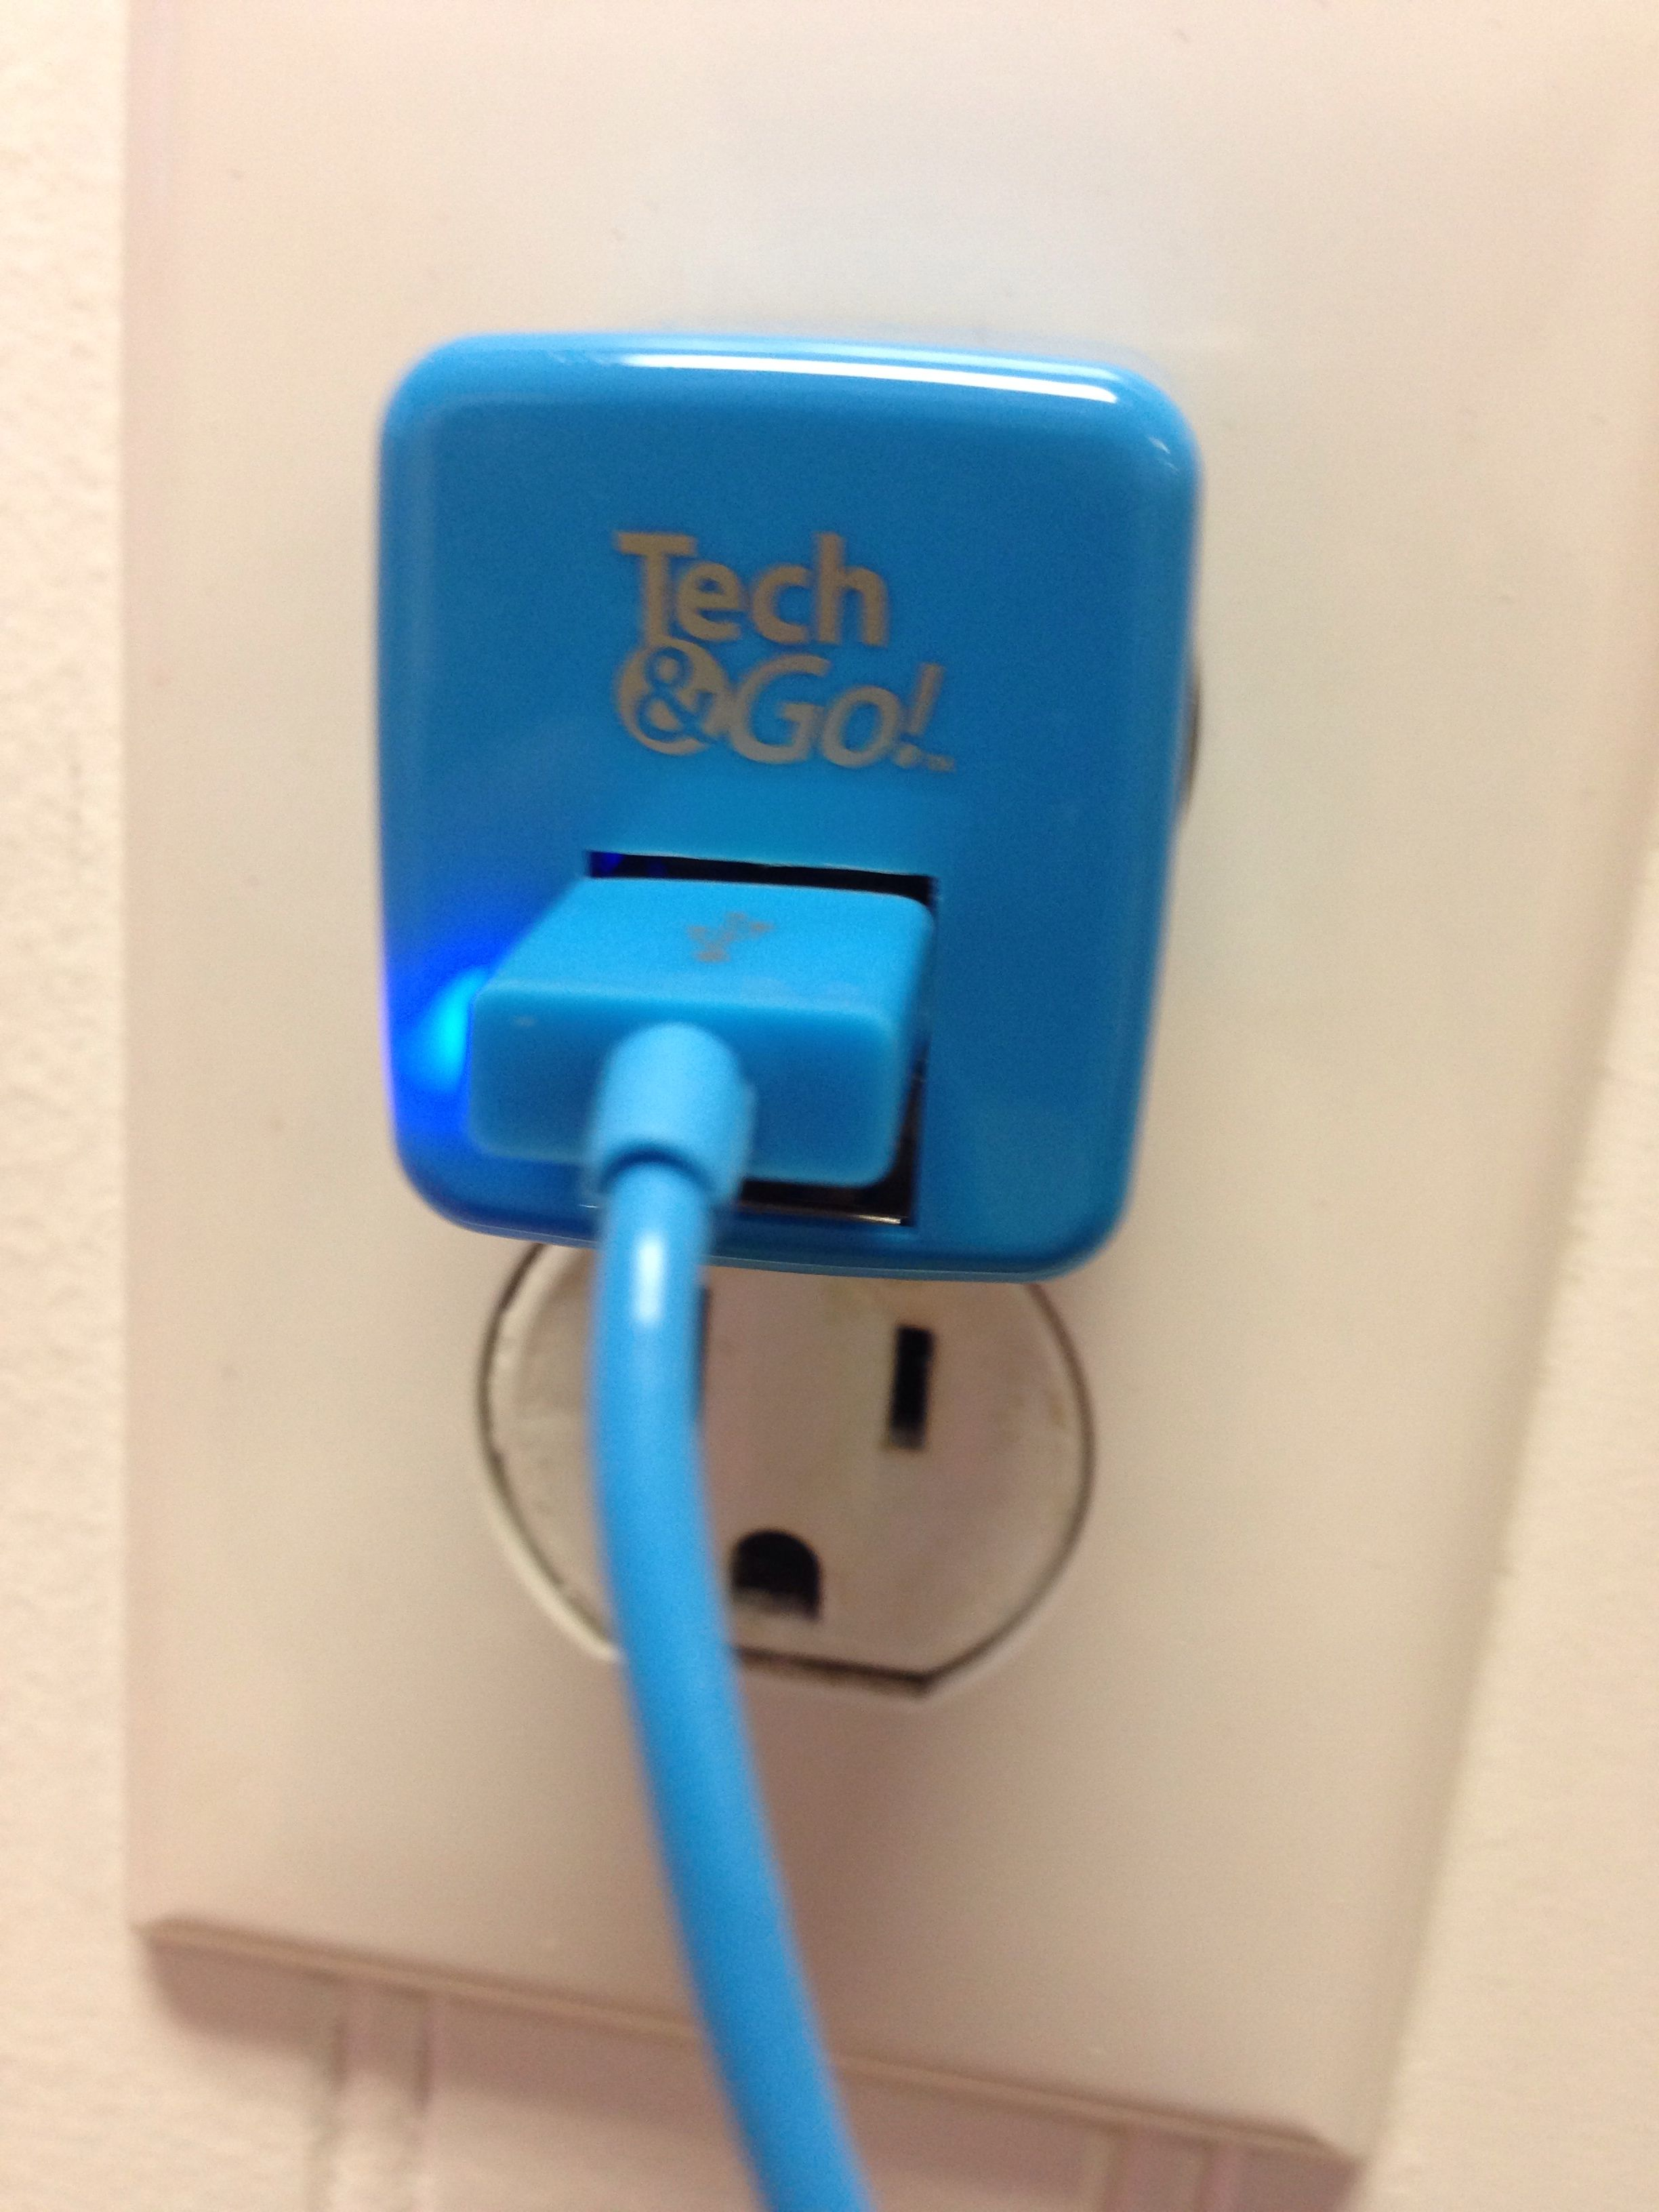 Tech and go colorful chargers are awesome I found mine at Walgreens